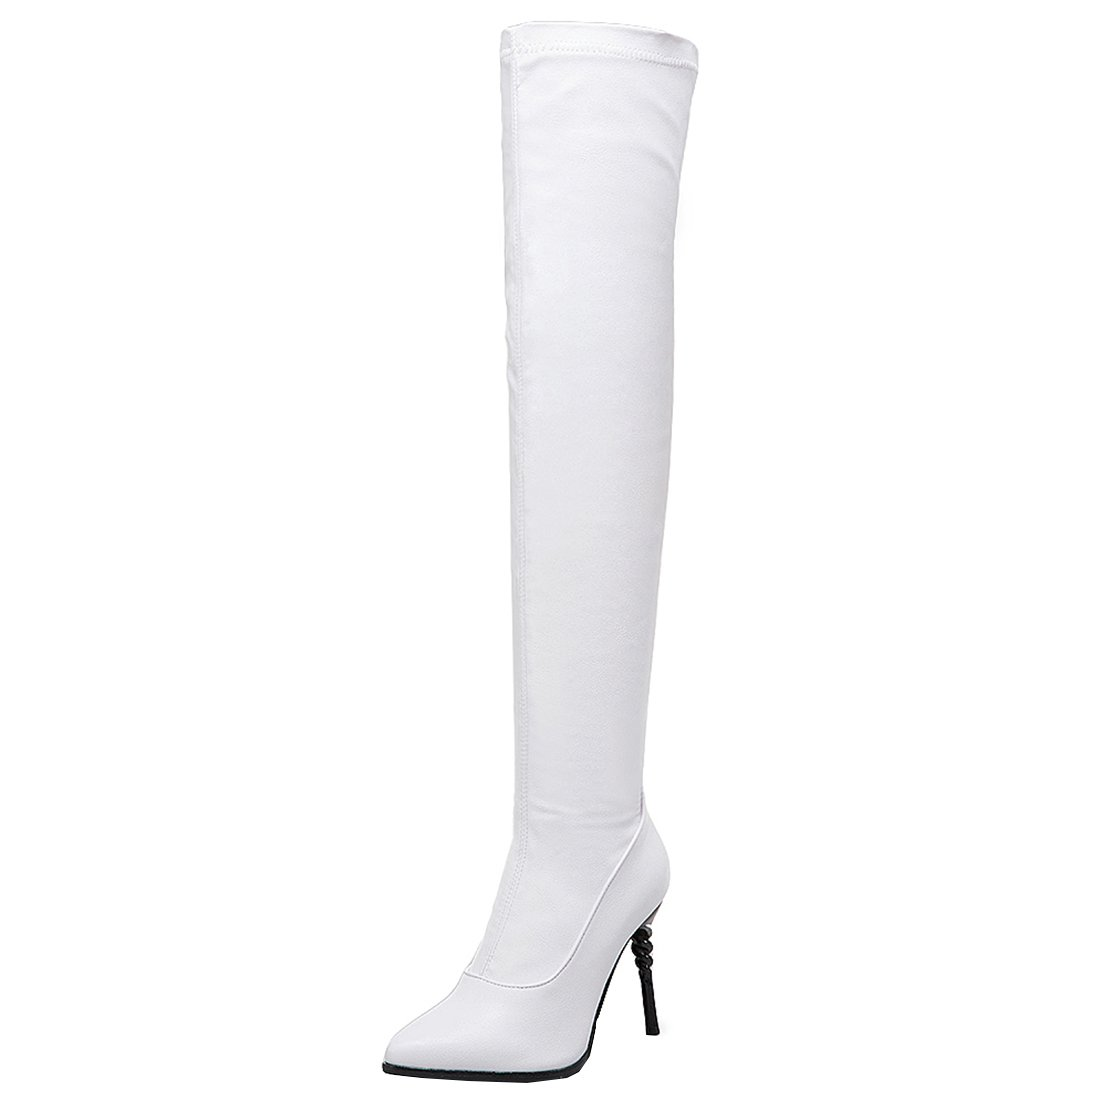 YE Chaussure B076CJK5YJ Bottes Cuissardes Extensibles YE Stretch Femme Sexy Blanc Longue Talon Aiguille Bout Pointu Haute Winter Shoes Boots Chaude Hiver Blanc f18f237 - jessicalock.space